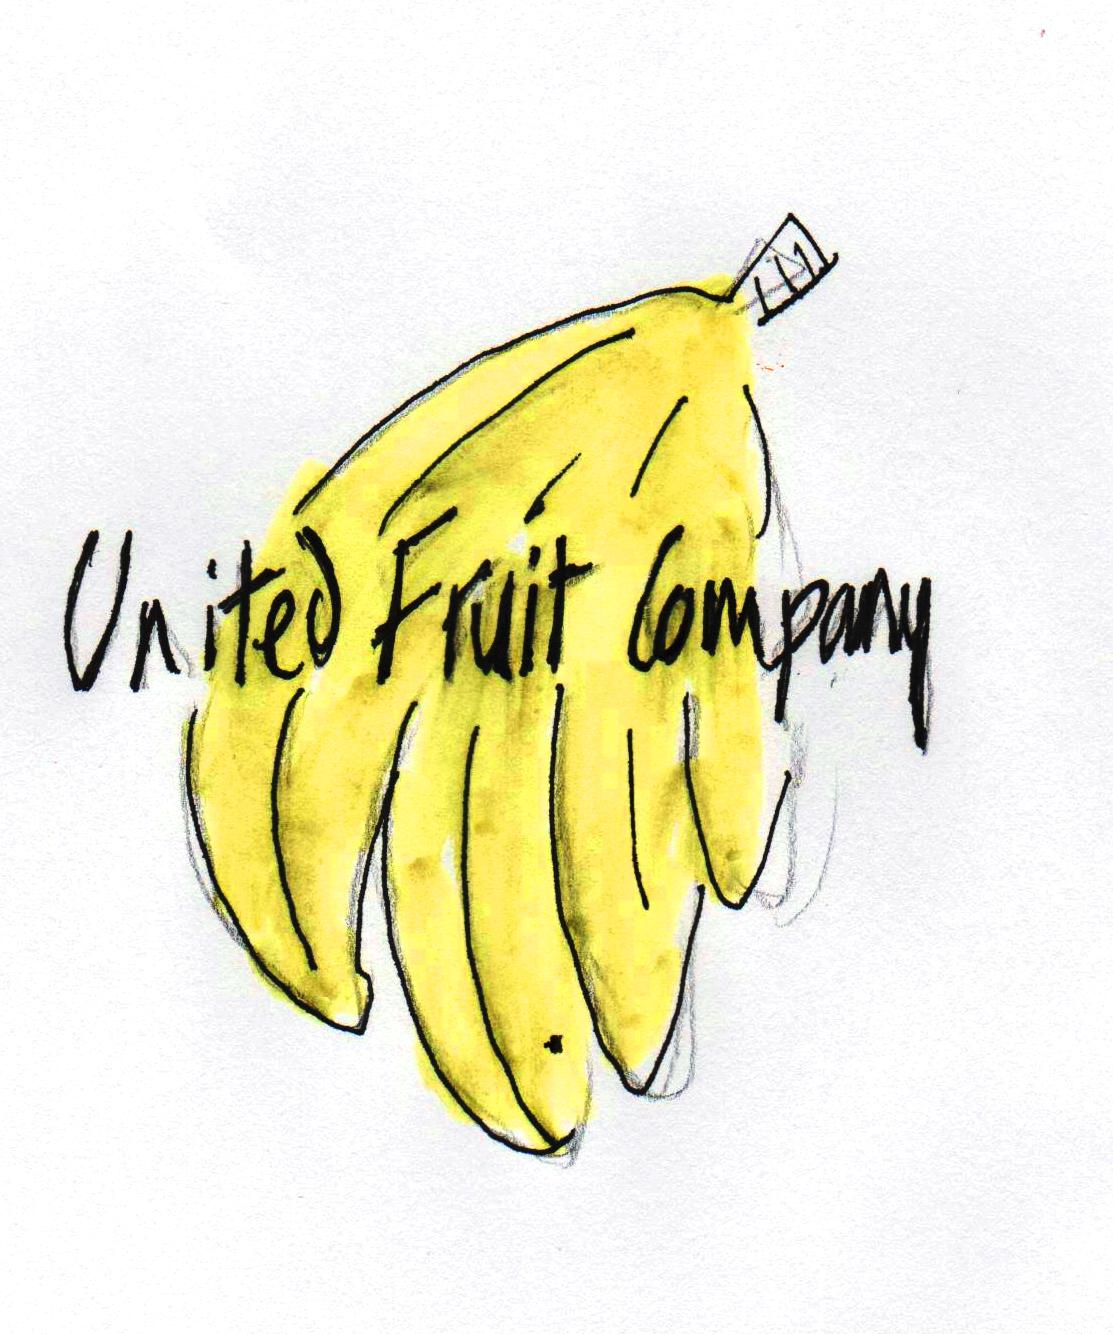 ufcothe united fruit company was an United fruit company - american produce company founded in 1899 when boston fruit co merged with other companies selling bananas grown in central america, colombia, and the caribbean.